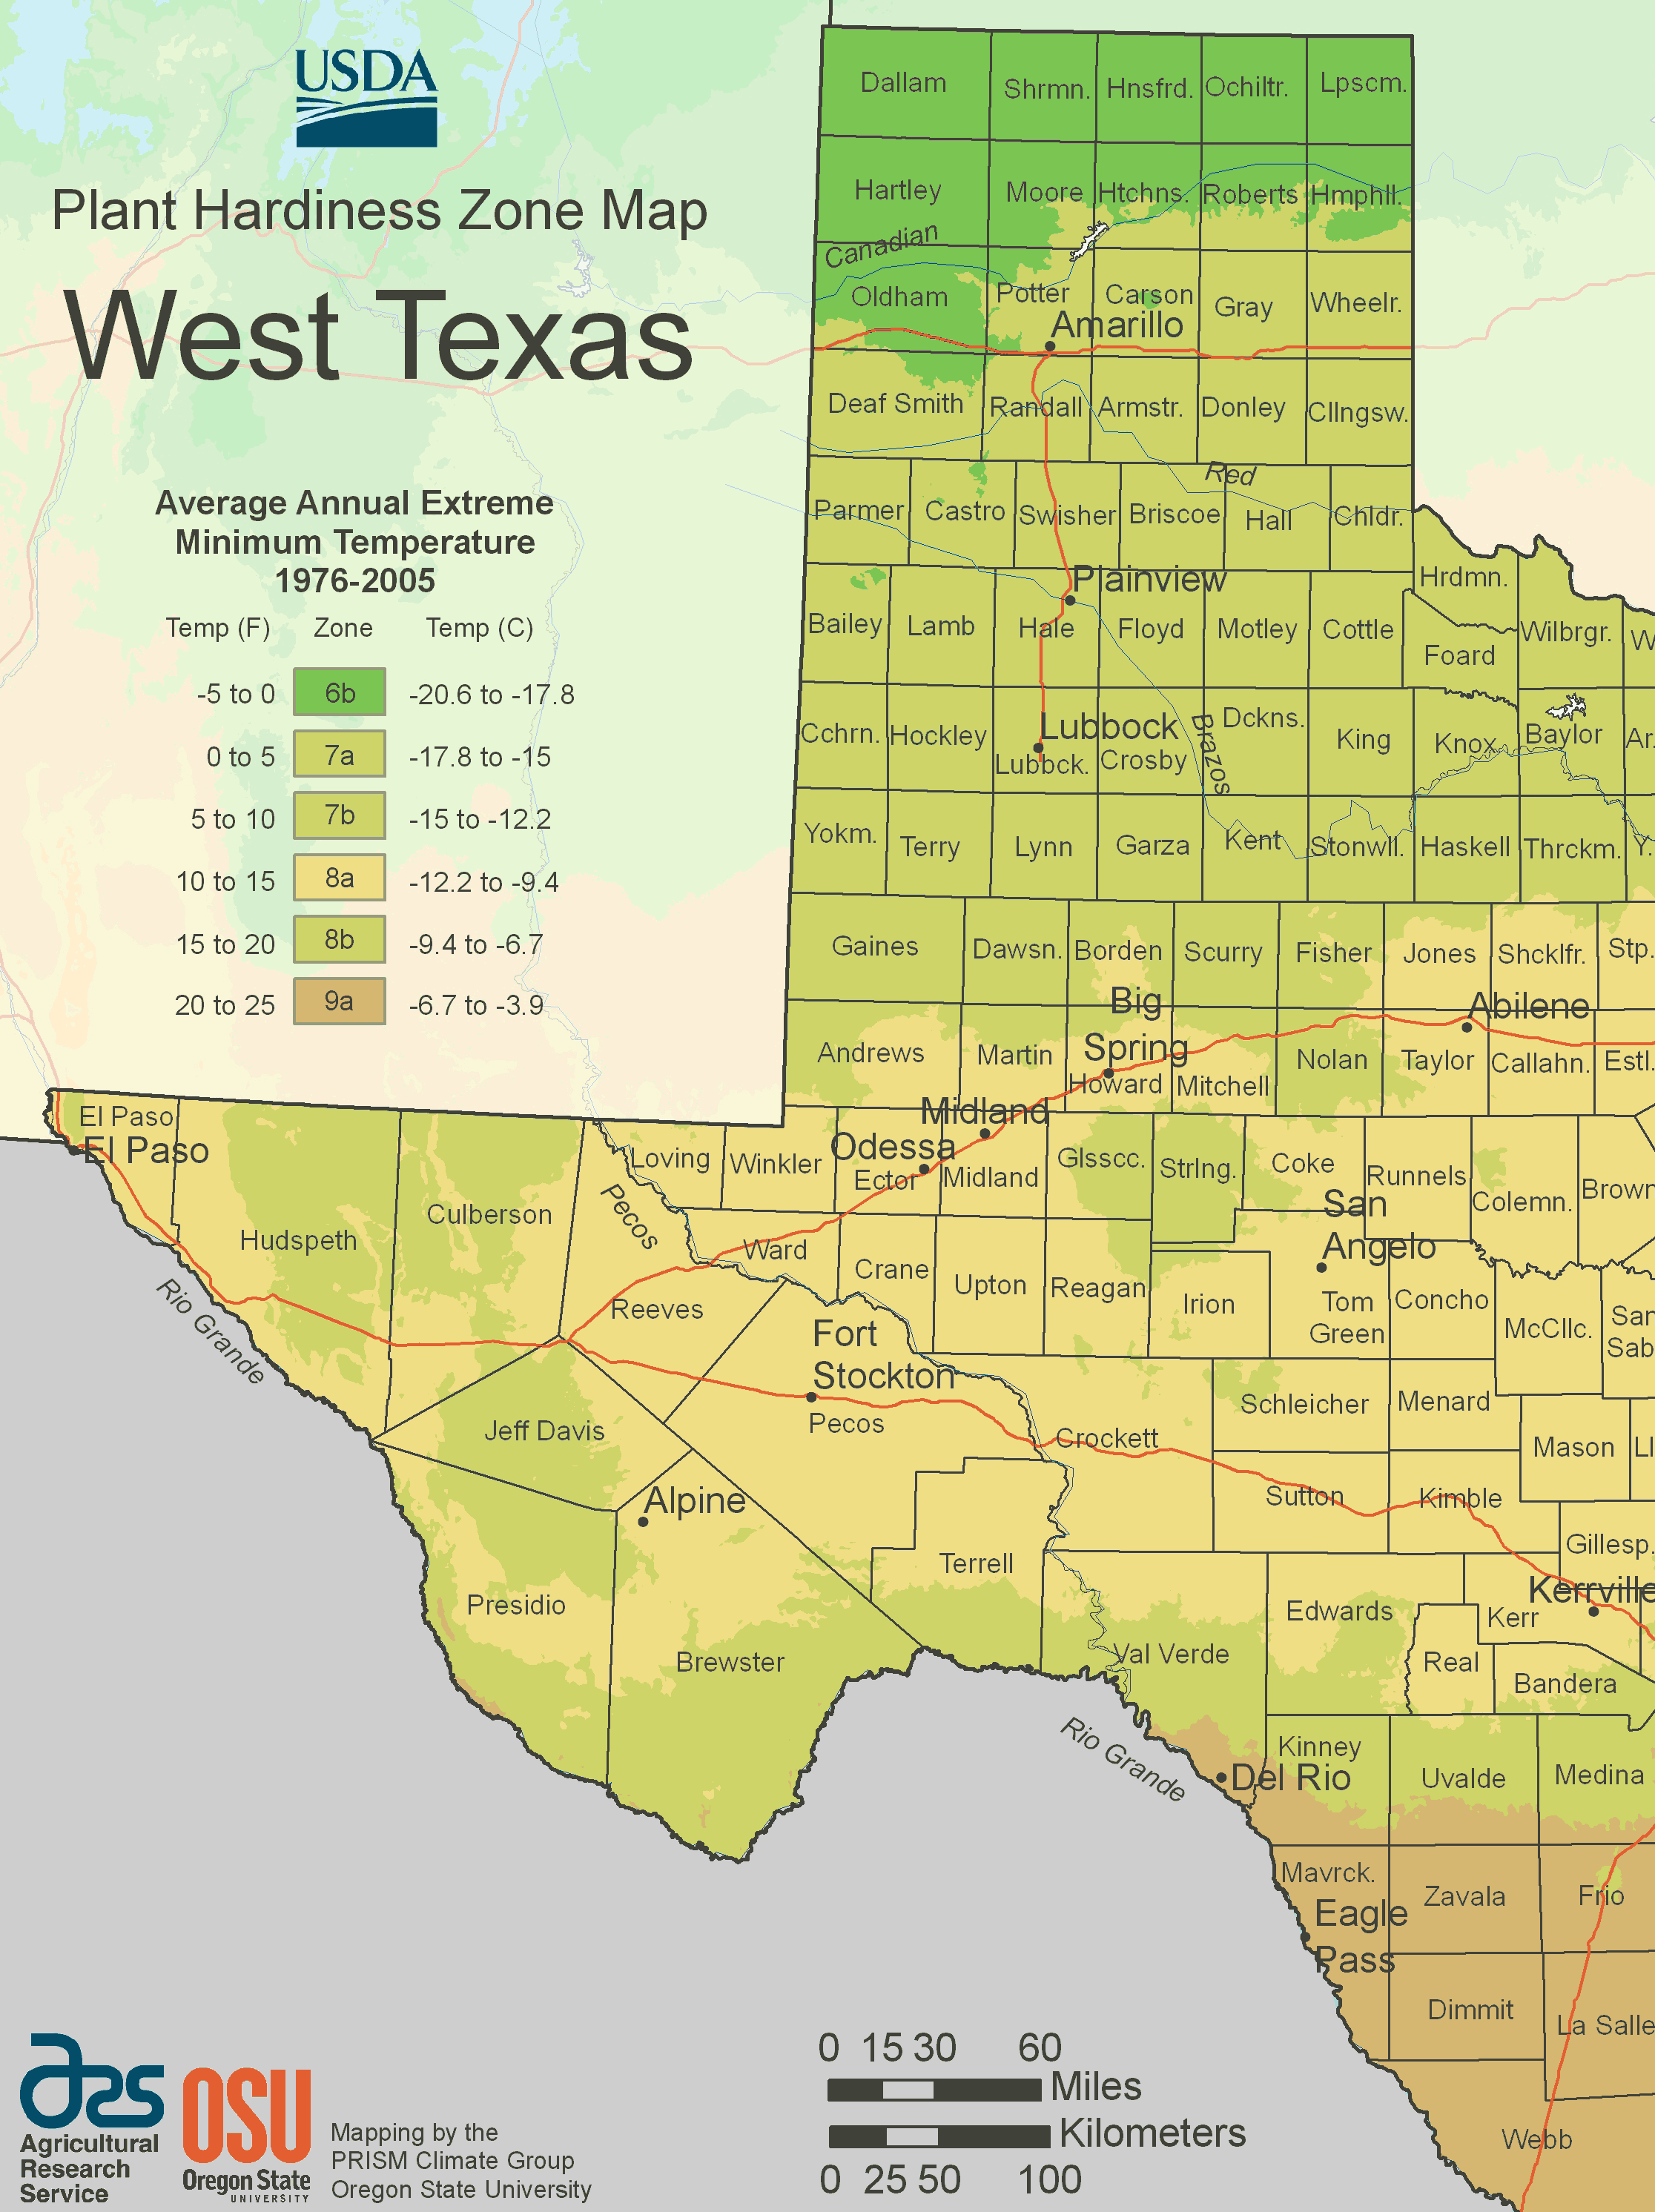 West Texas Plant Hardiness Zone Map • Mapsof.net